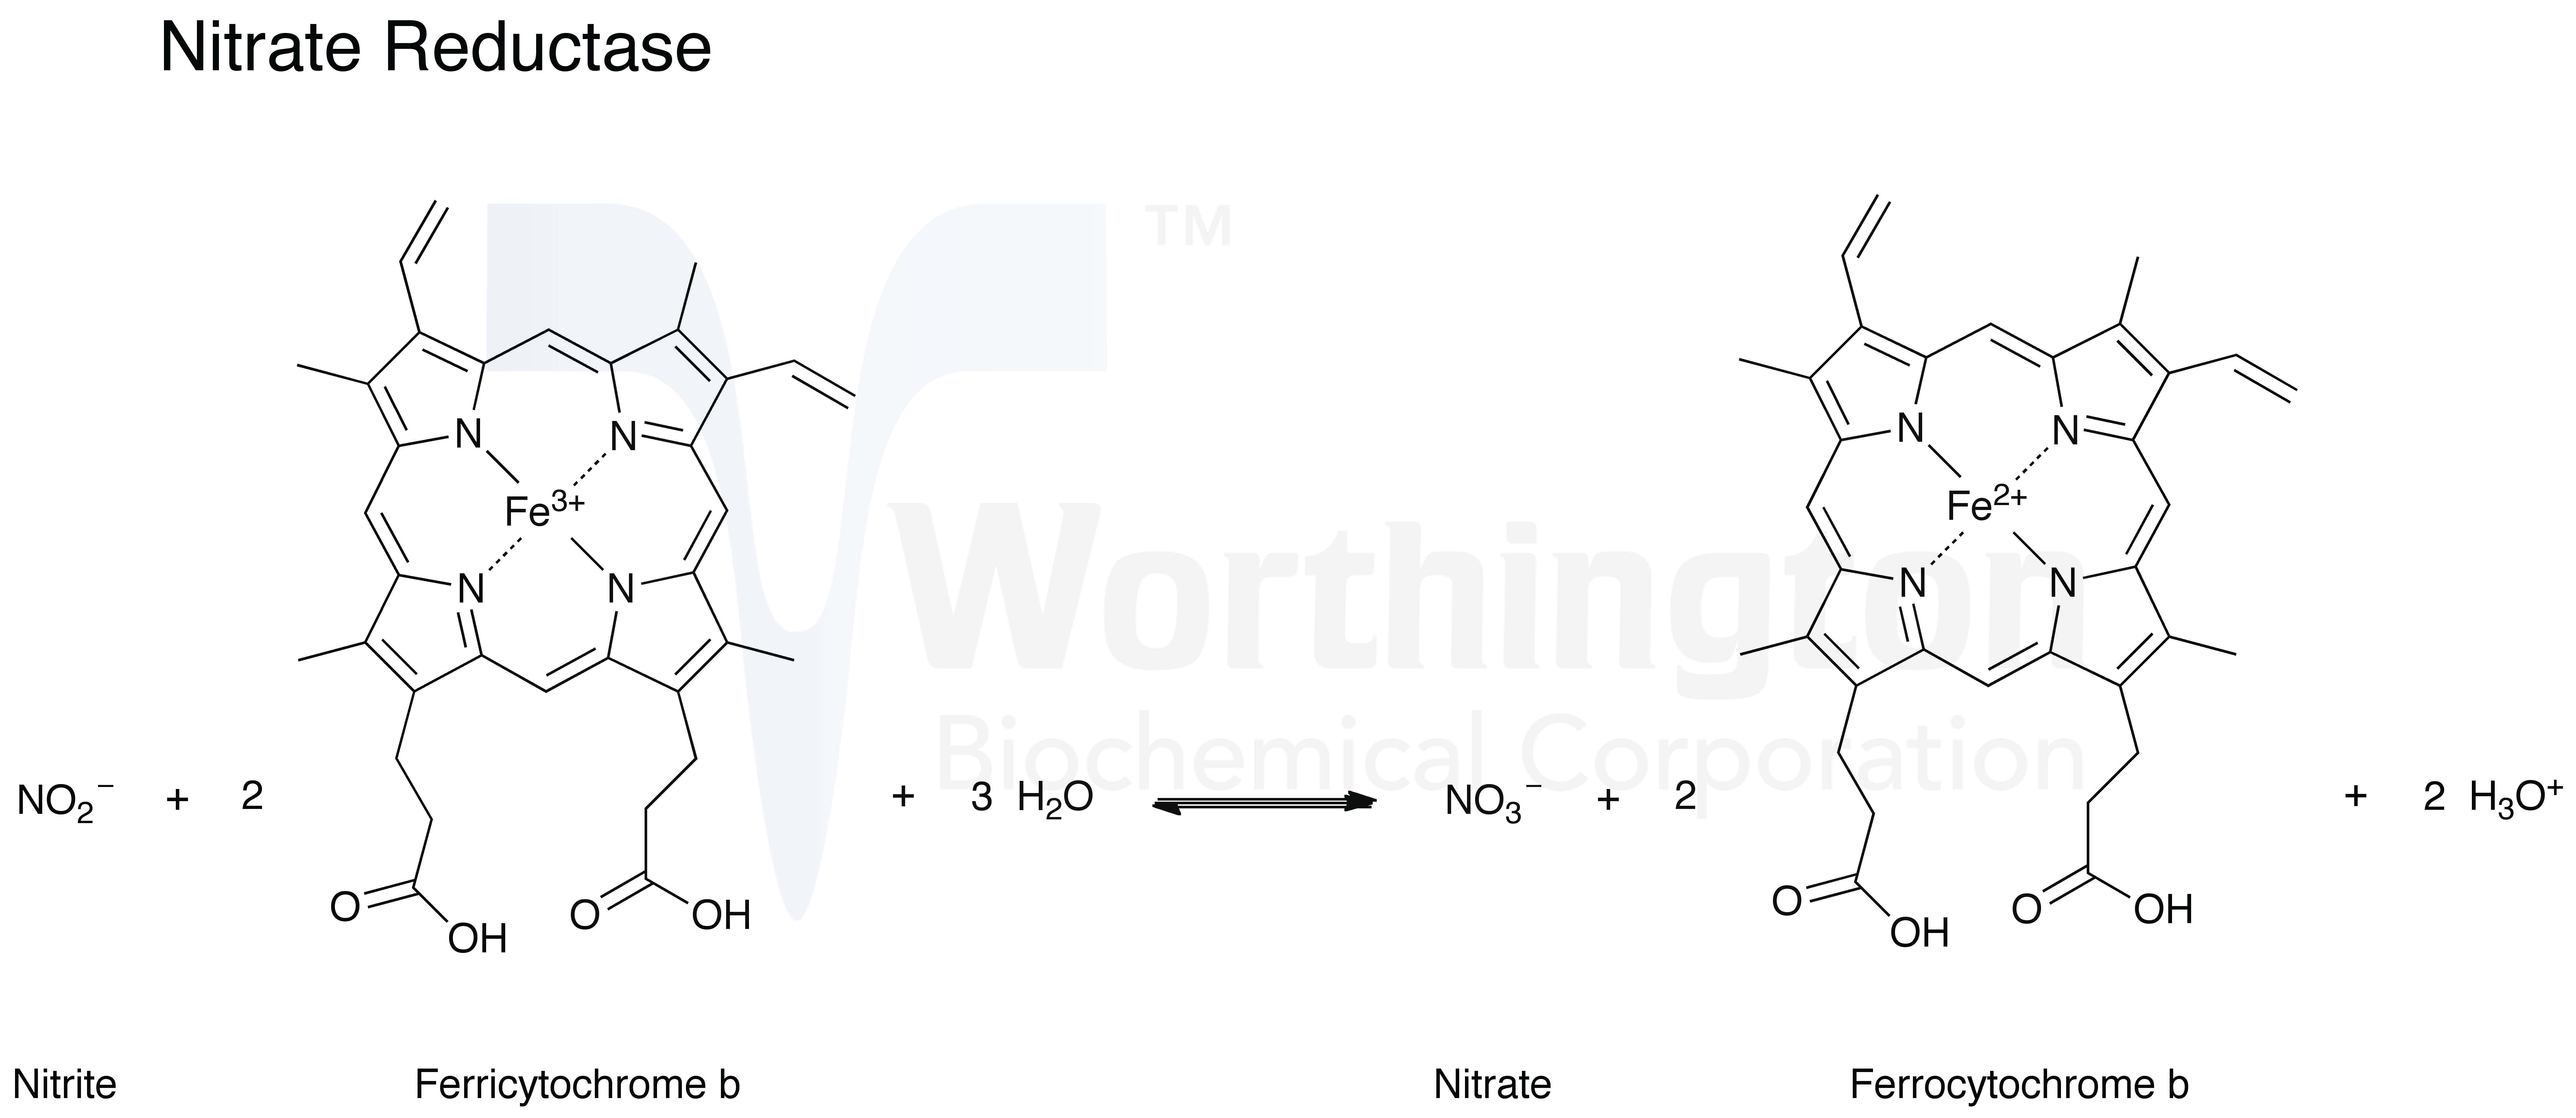 Nitrate Reductase